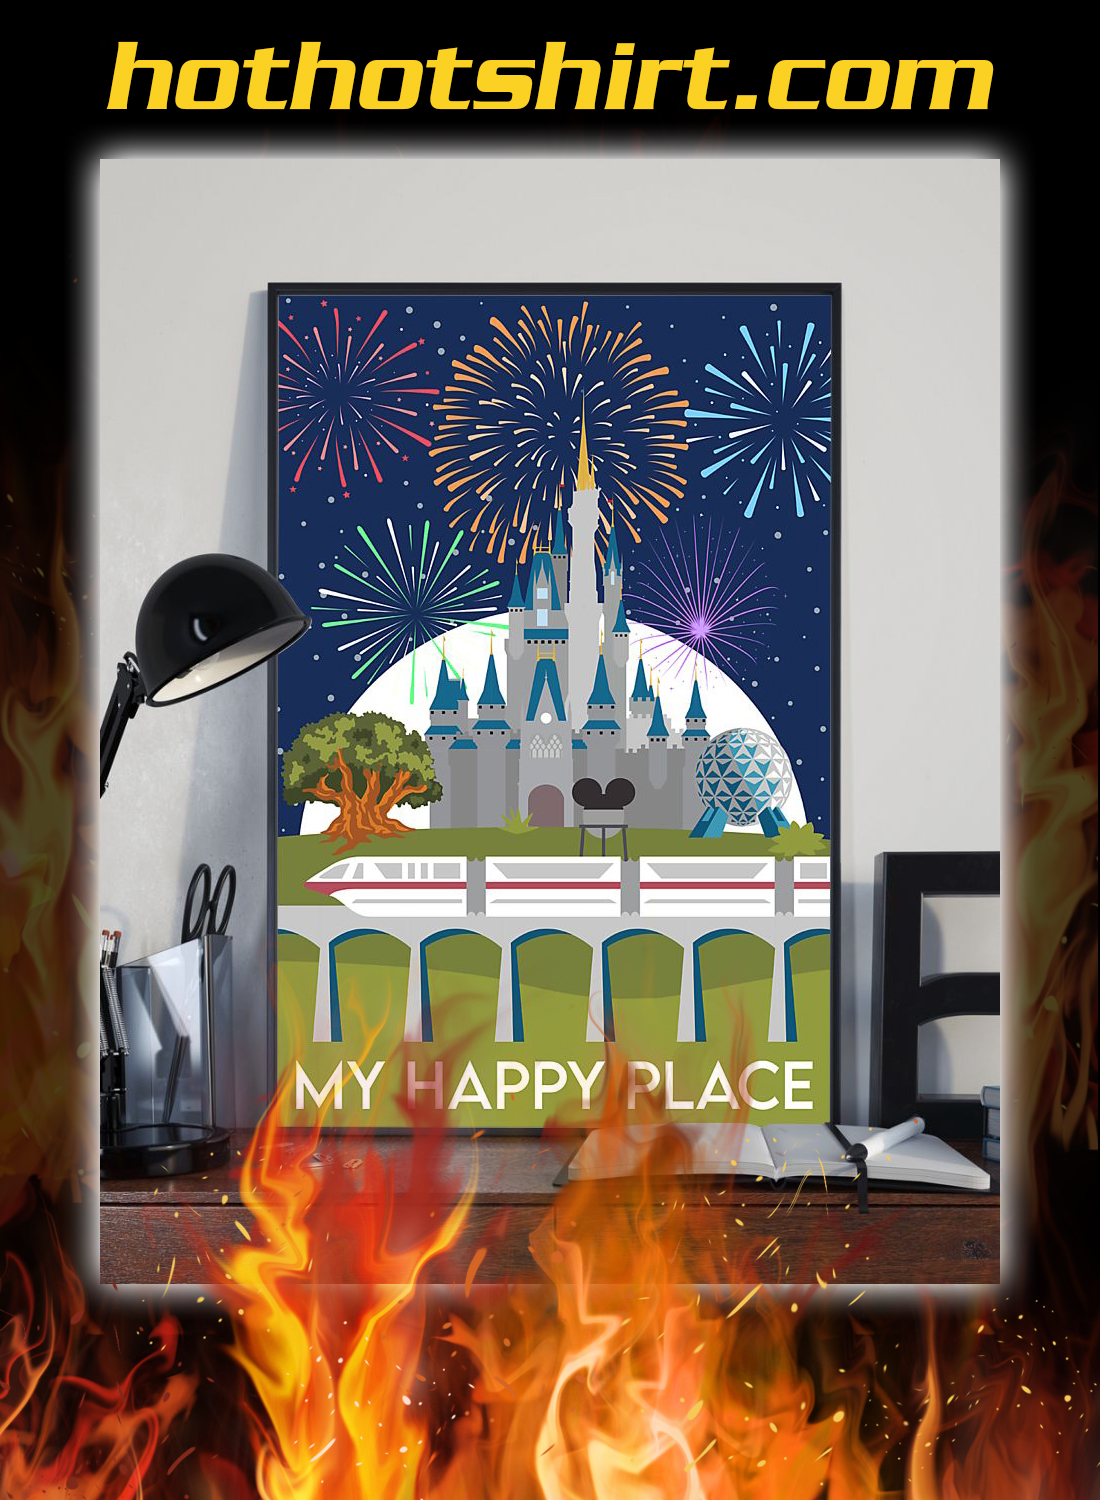 My happy place poster 2